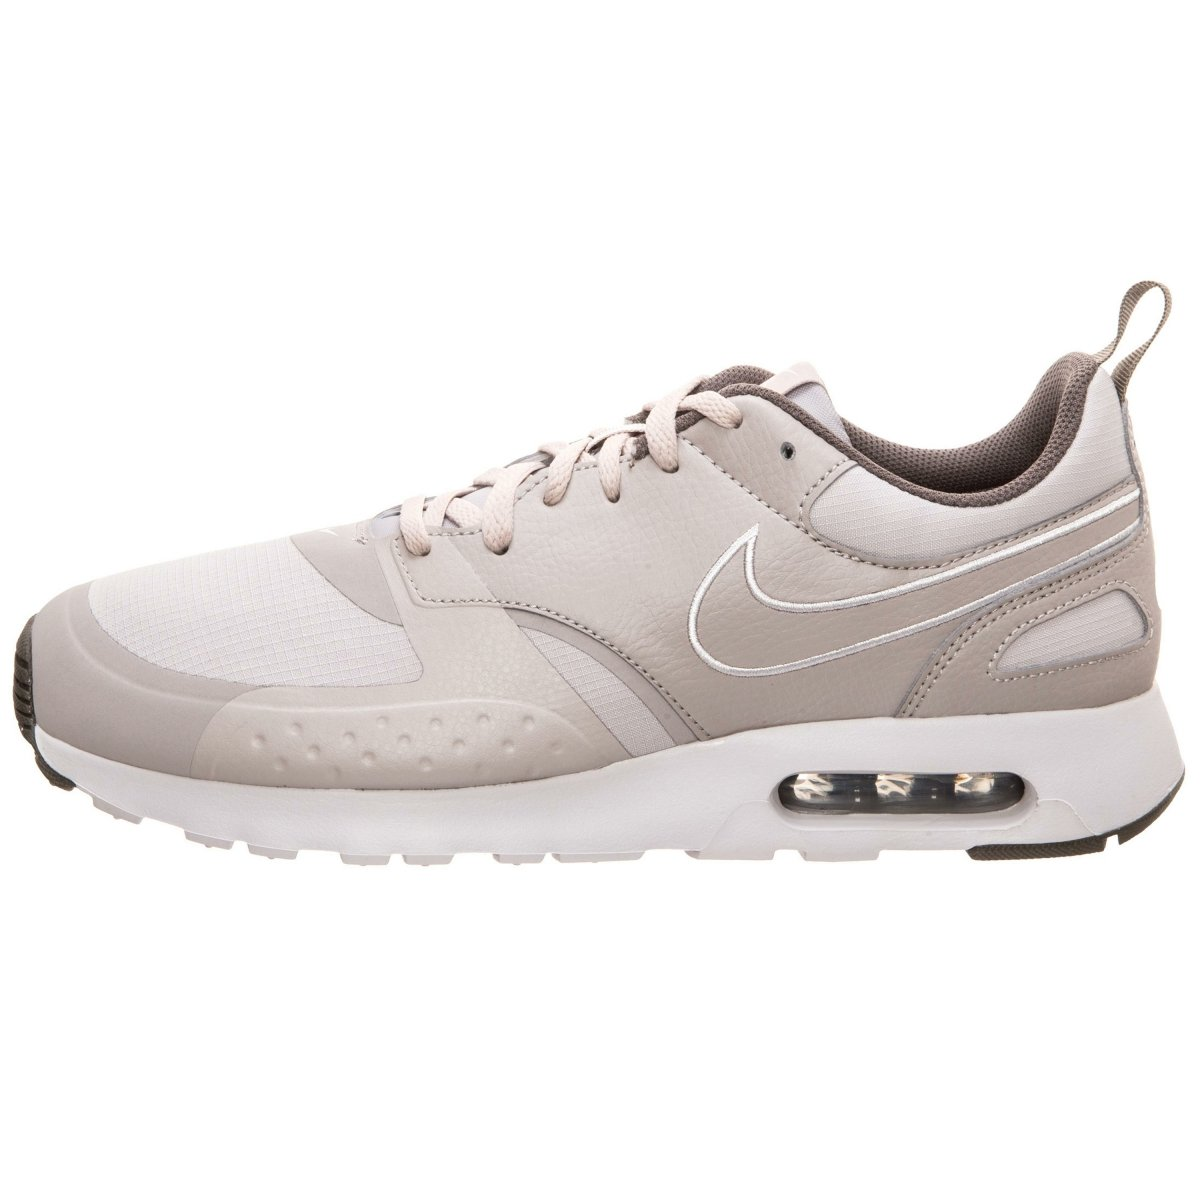 Nike Air Max Vision SE in pink 918231 201   everysize